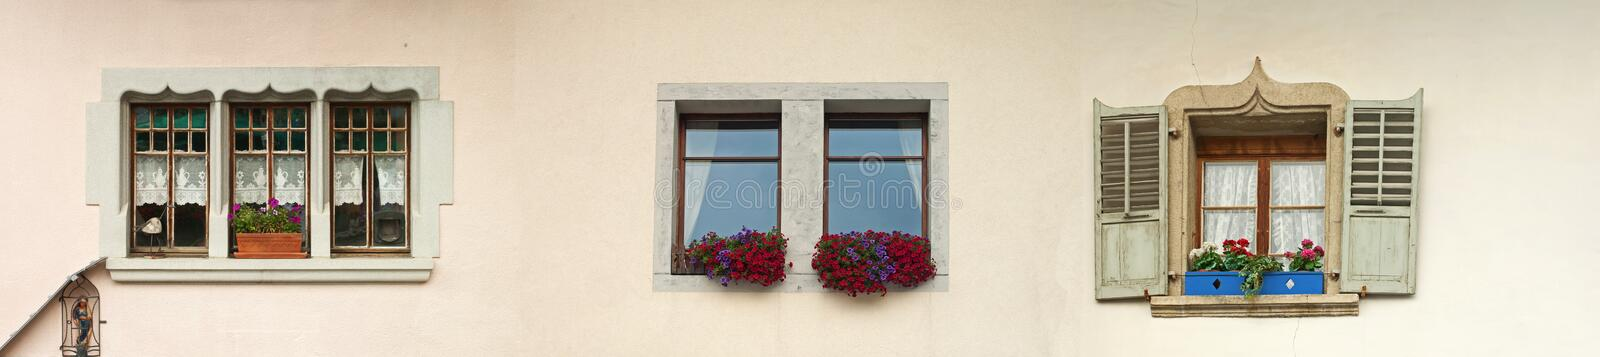 Windows. Different windows with colorful flowers royalty free stock photo